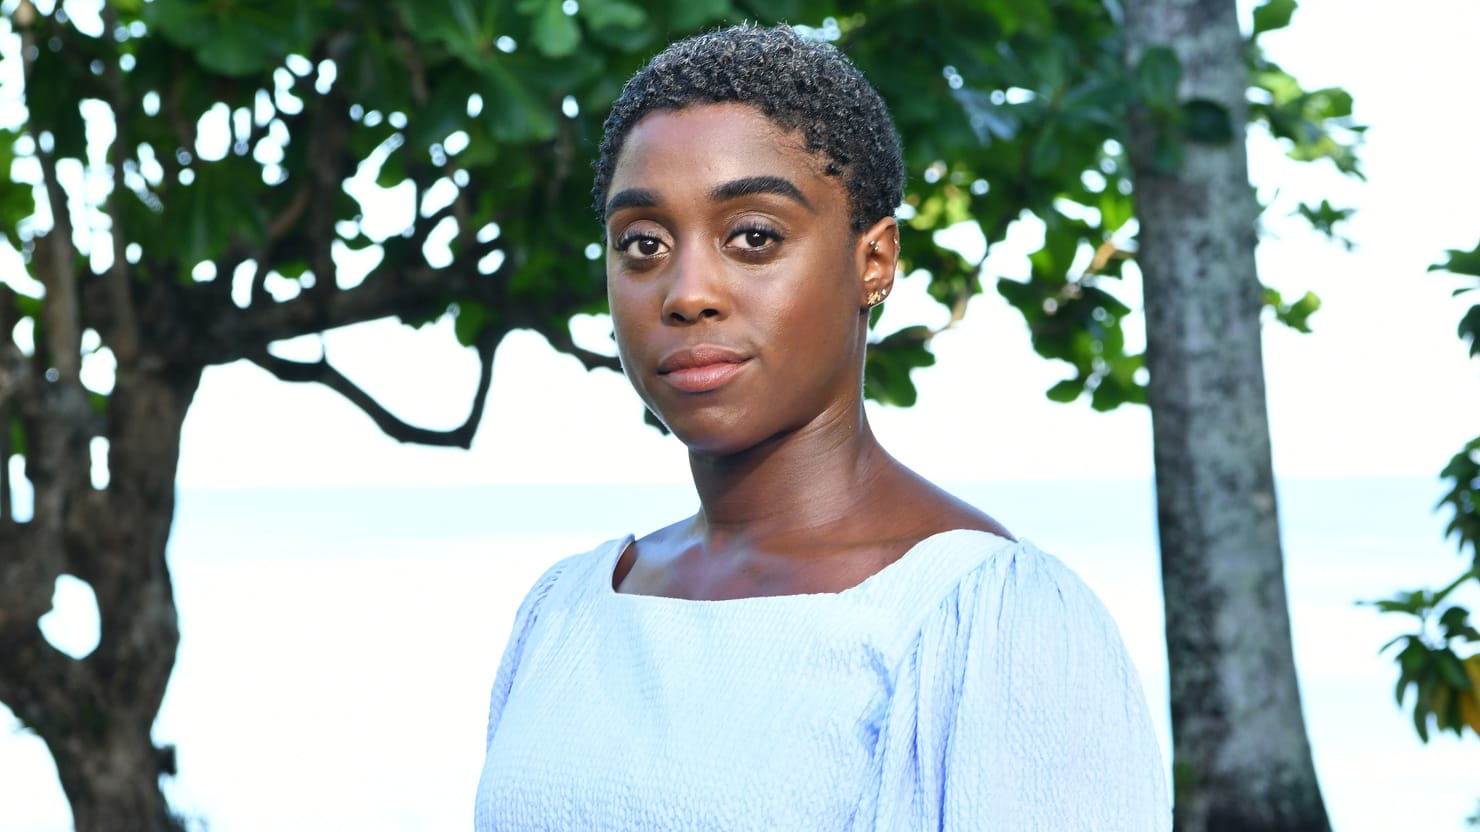 Lashana Lynch—a Black Woman—Is Taking Over as James Bond. It's About Damn Time.